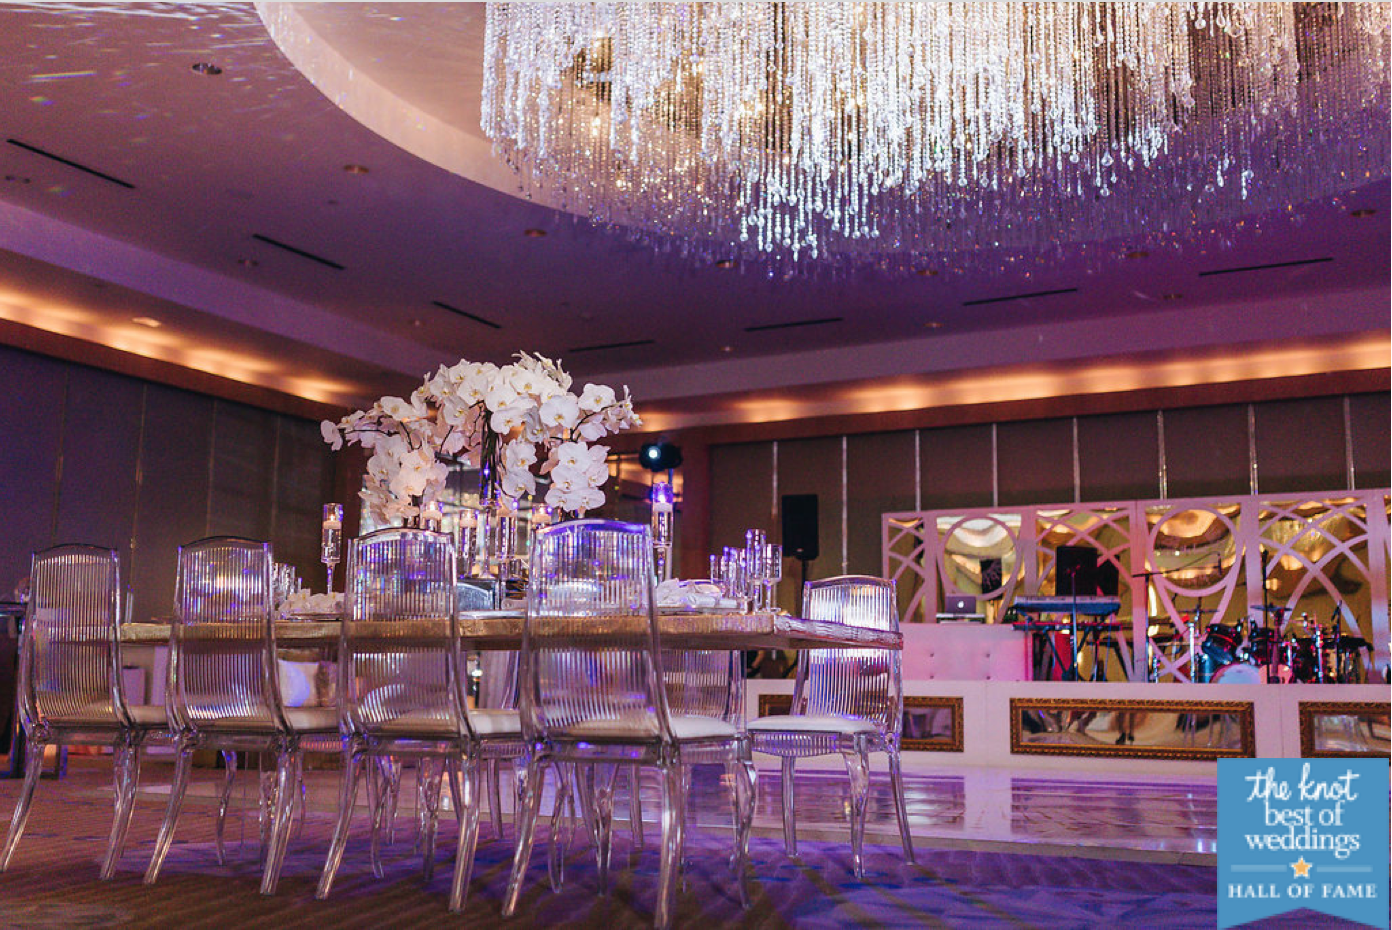 Wedding Planners In Miami FL The Knot 480174ad Ba11 408c 9d1e 2df014b0593e Fl